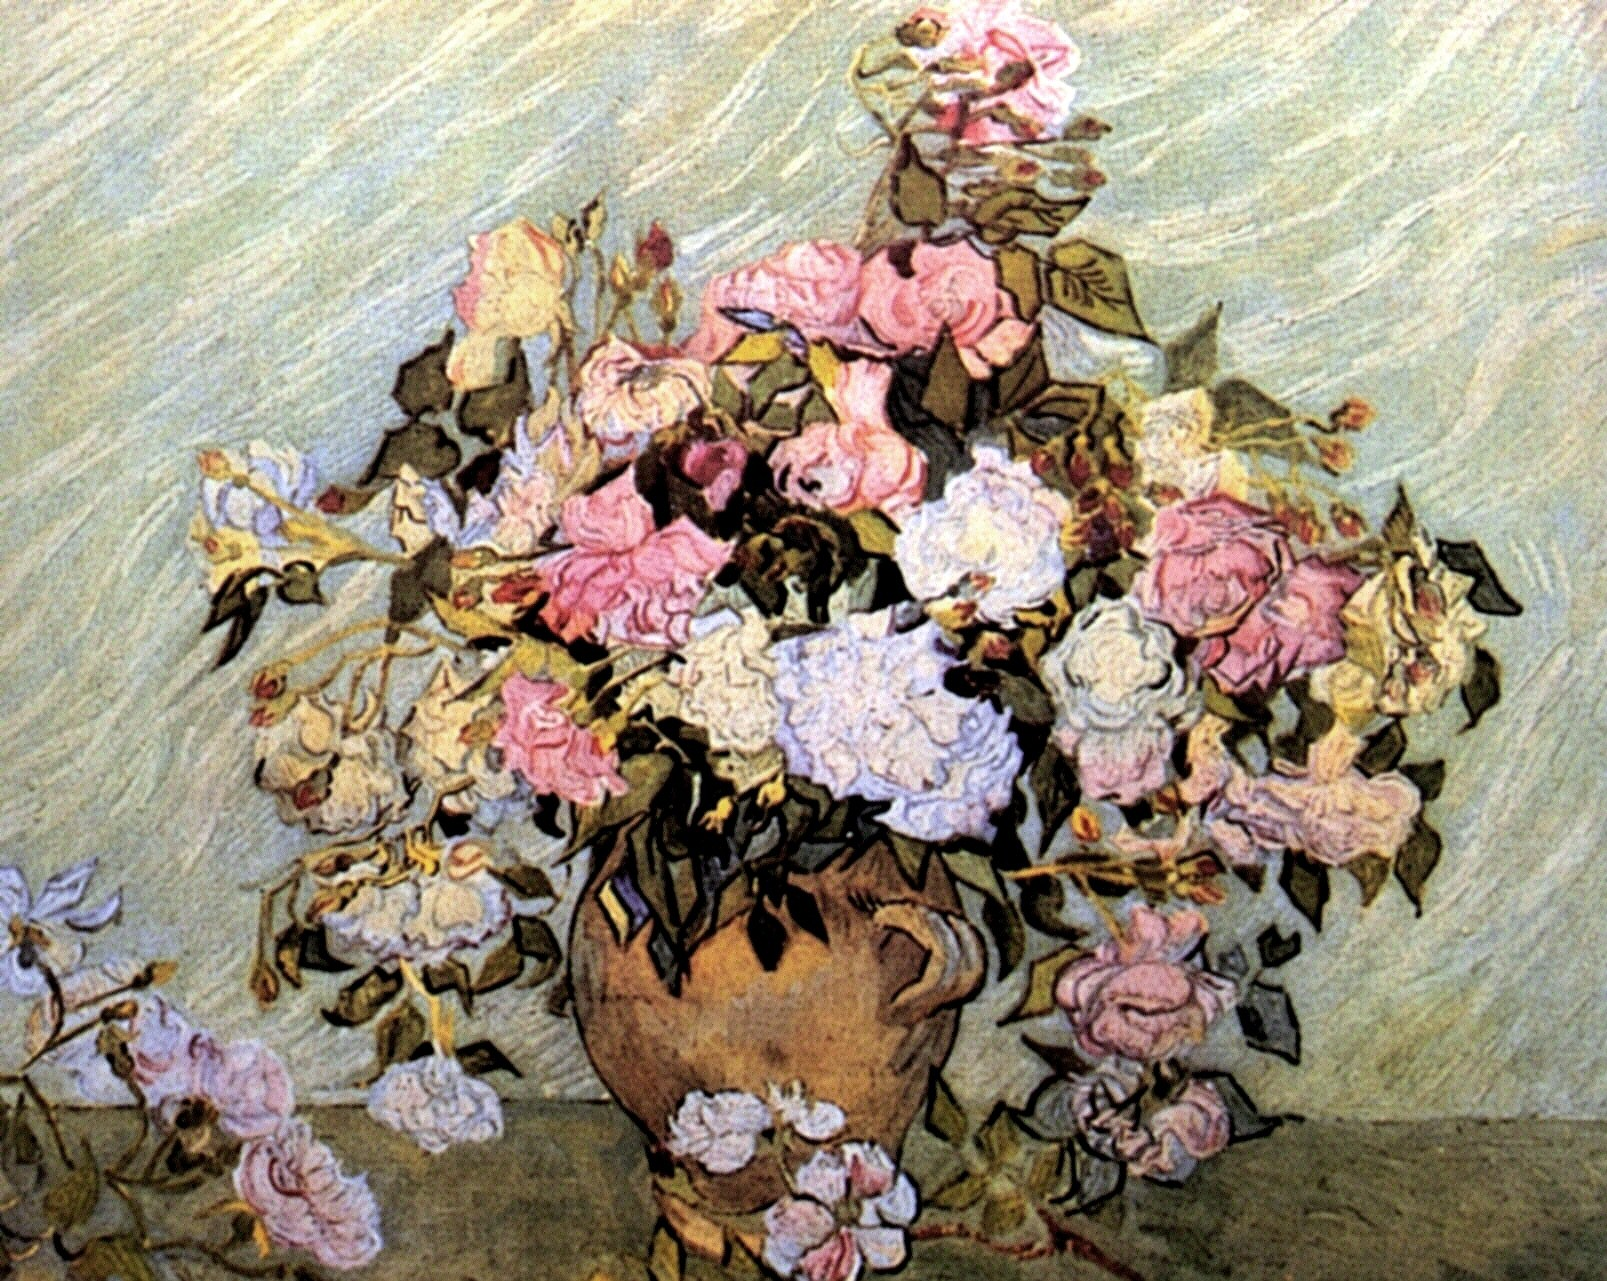 Still Life Vase with Roses 1890 Vincent van Gogh WikiArt